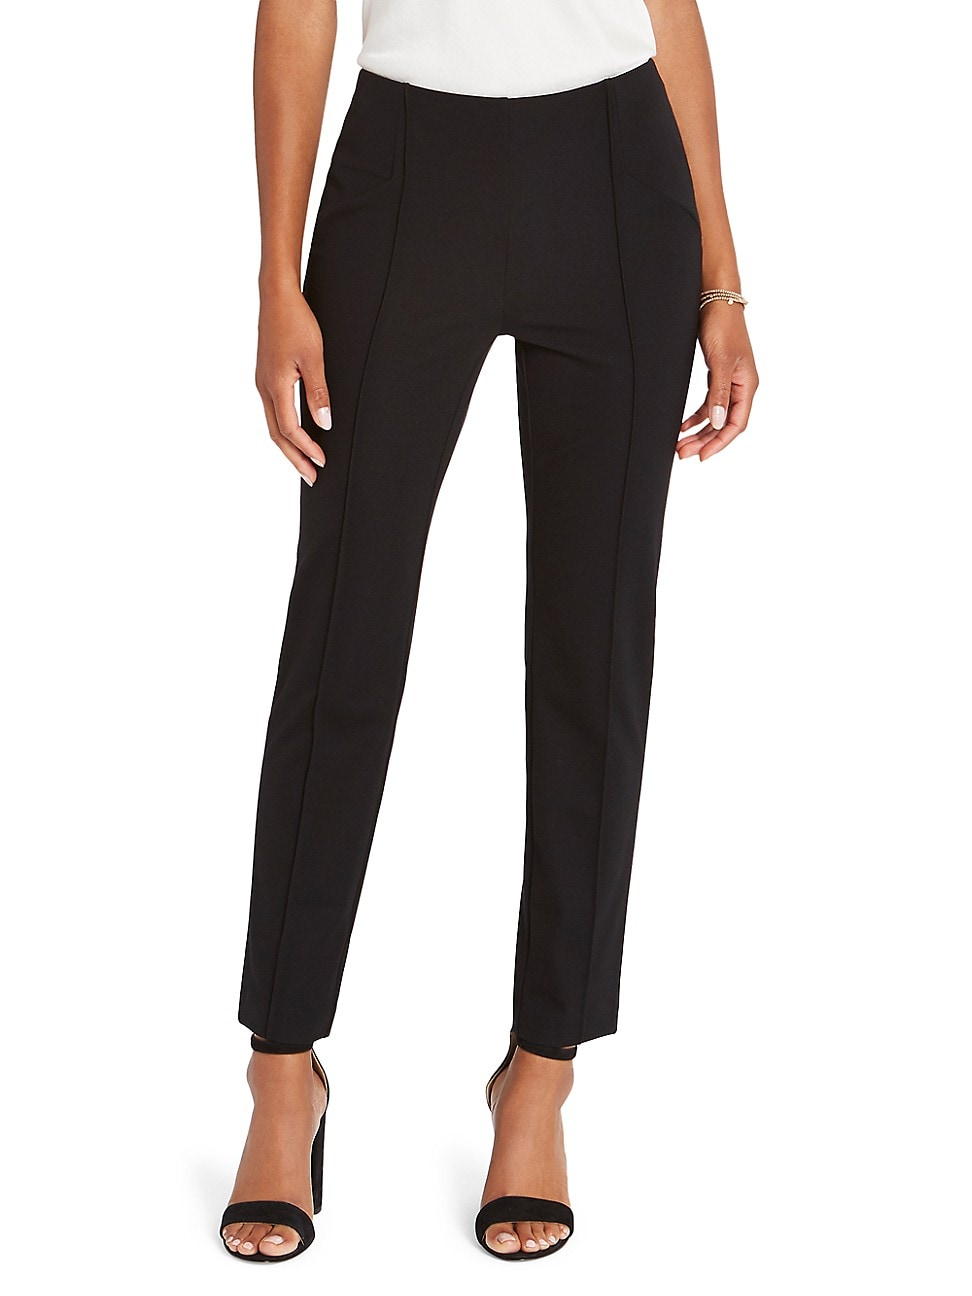 Nic + Zoe WOMEN'S LEAD THE WAY PONTE PANTS